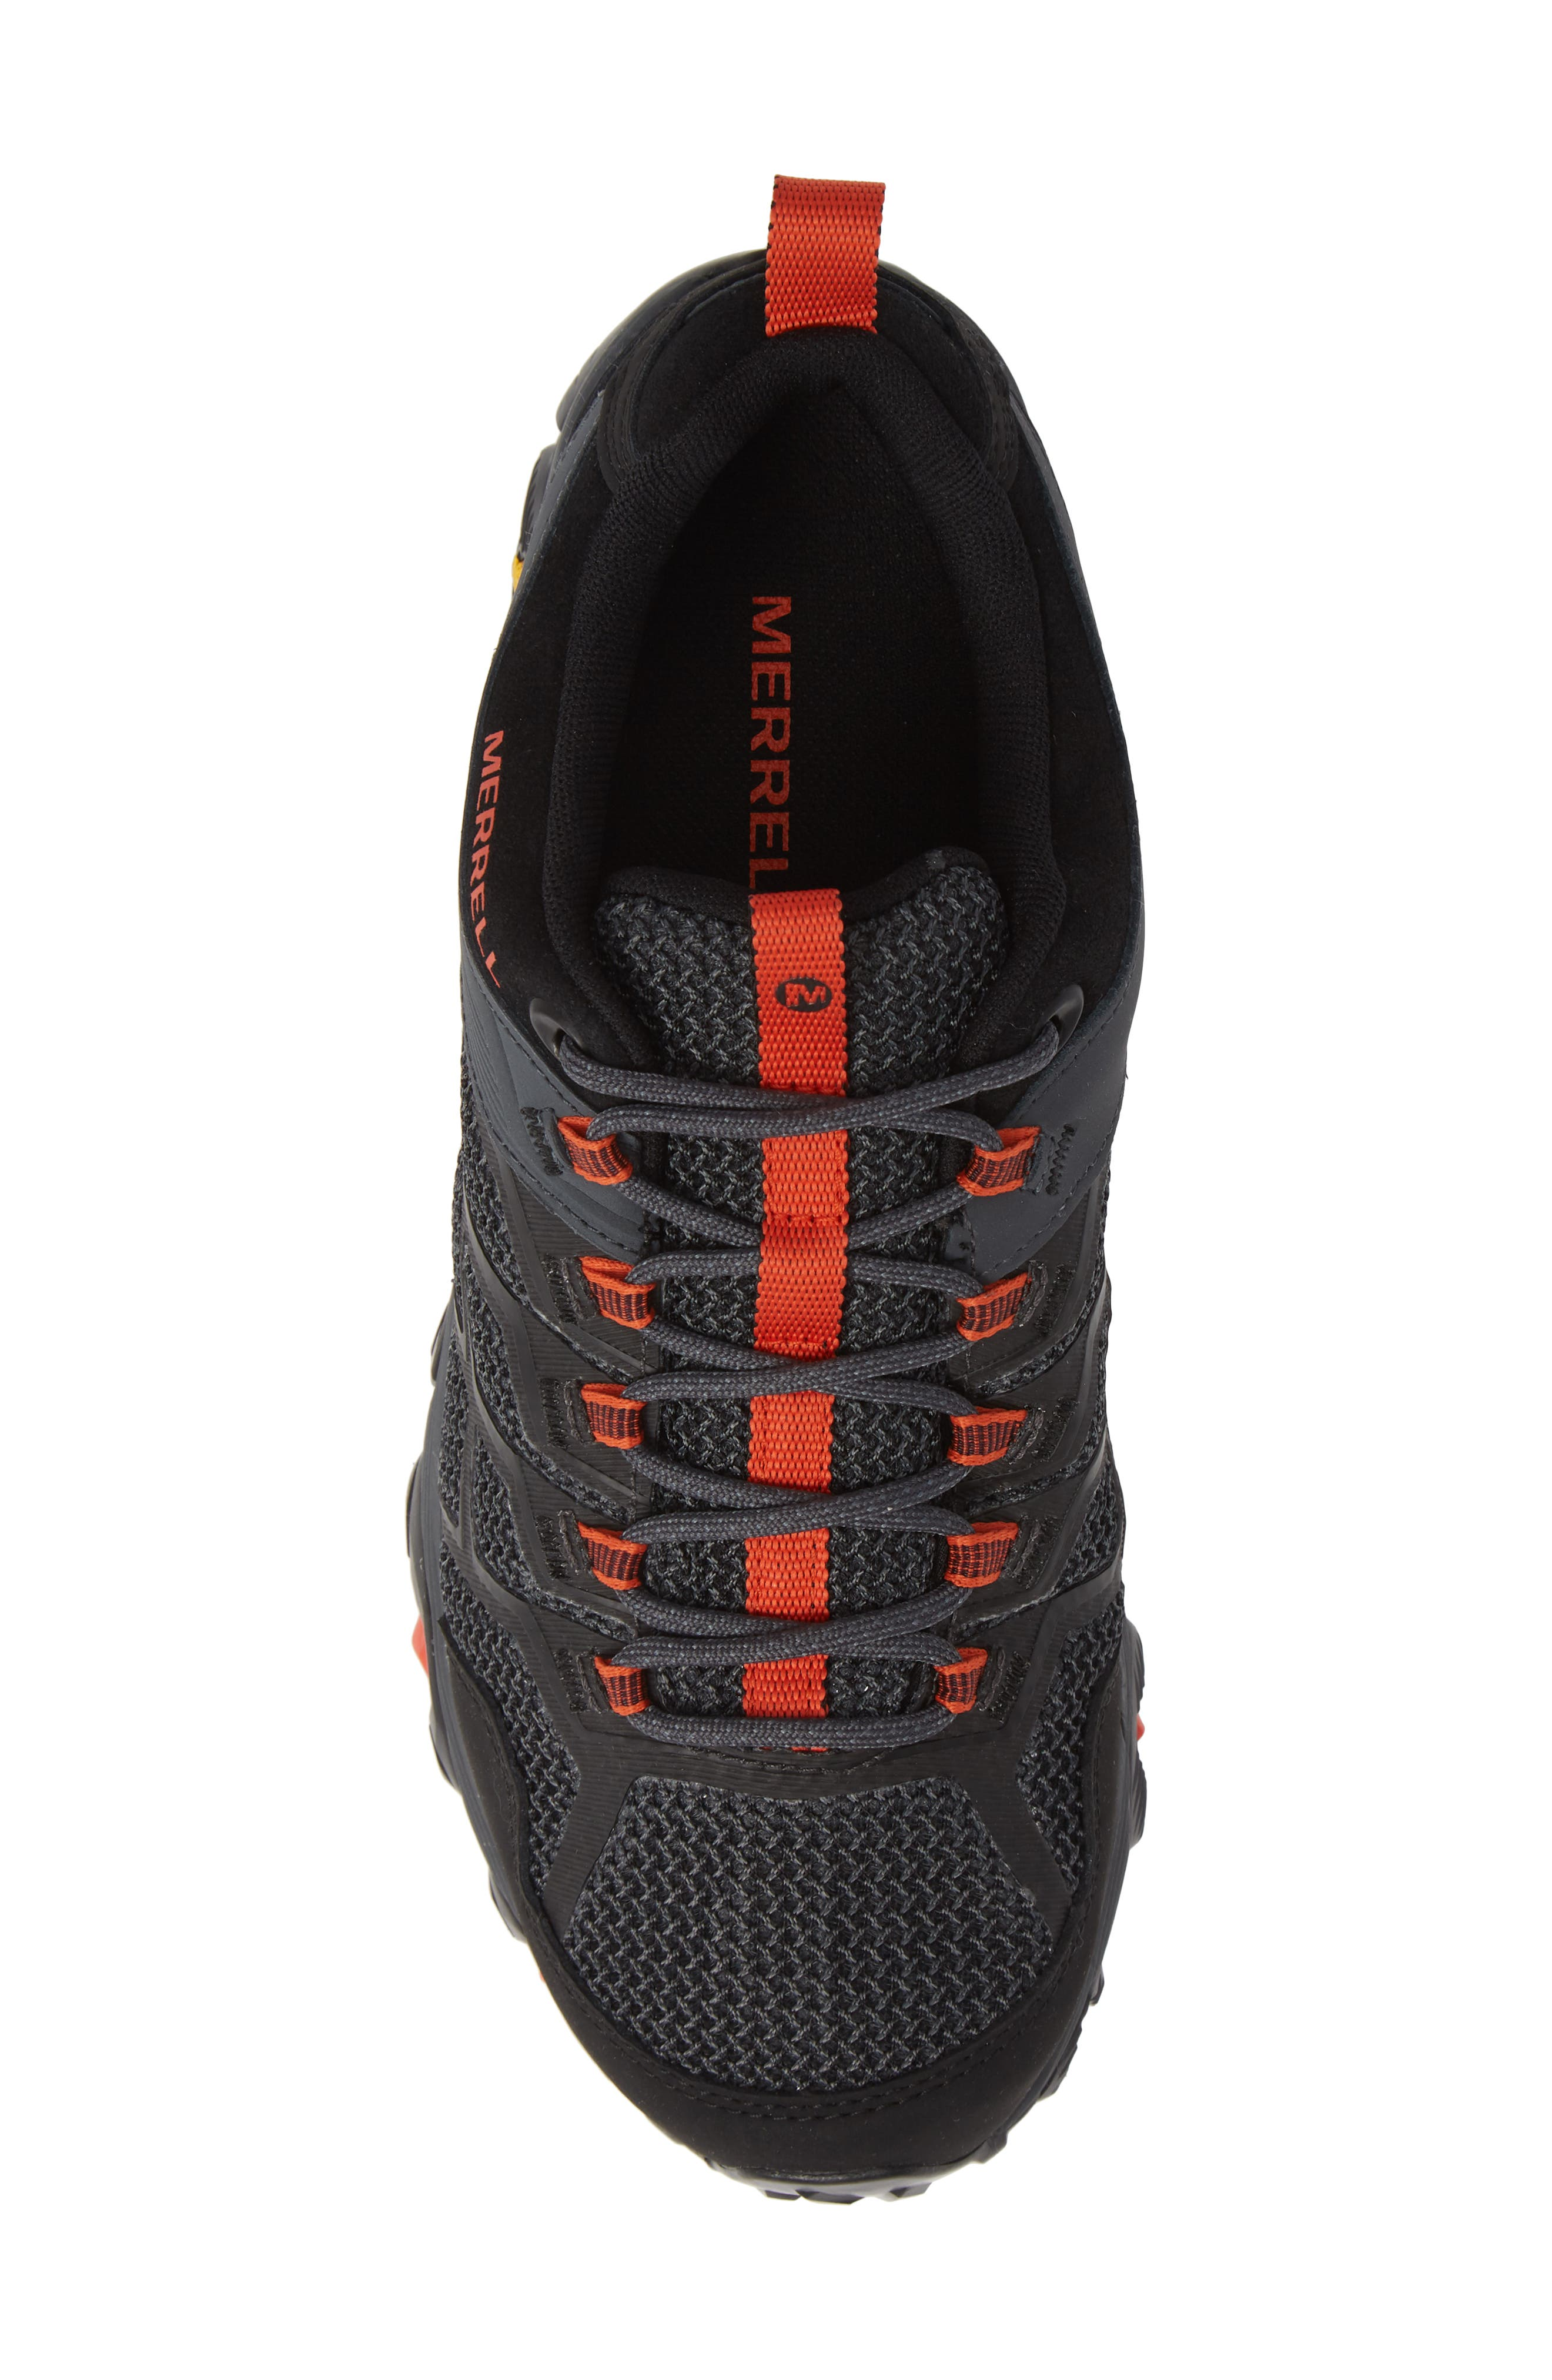 Moab FST 2 Waterproof Hiking Shoe,                             Alternate thumbnail 5, color,                             001